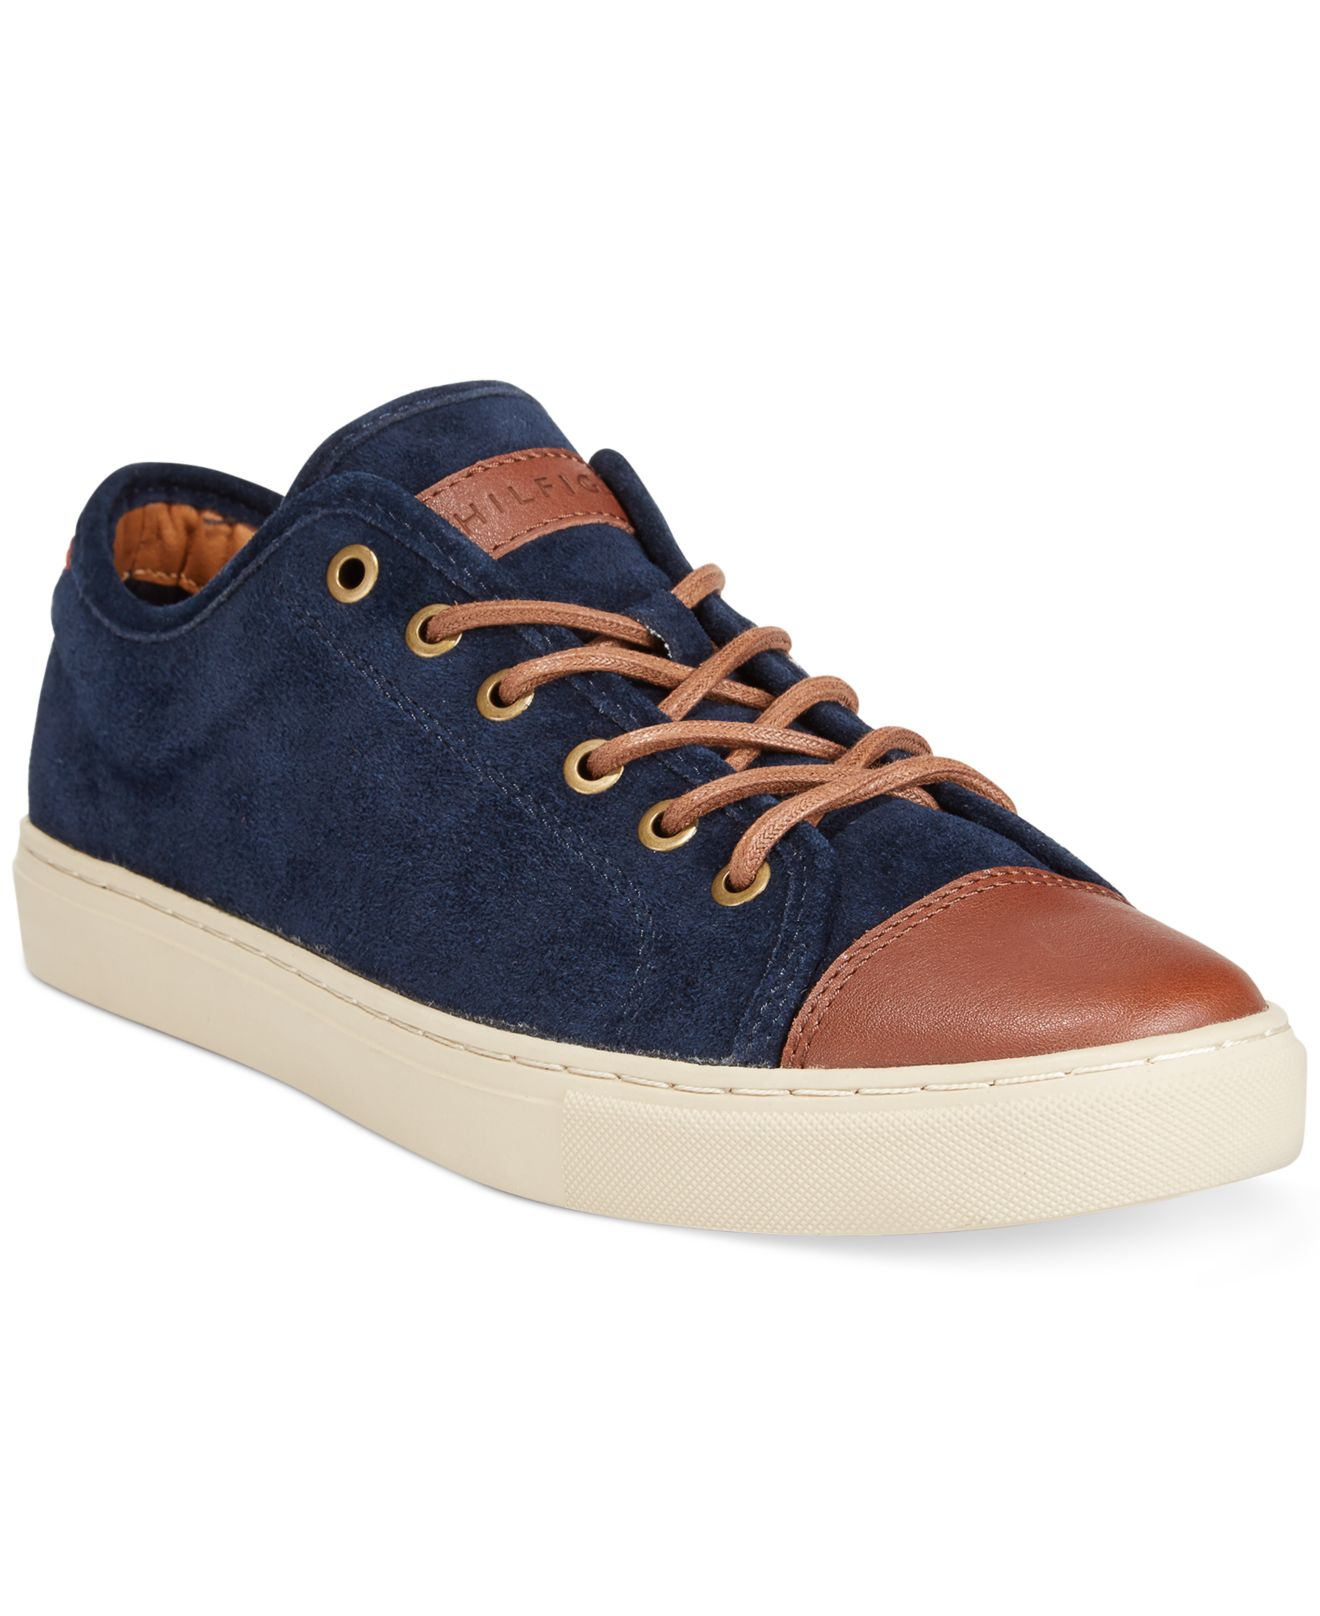 lyst tommy hilfiger mason sneakers in blue for men. Black Bedroom Furniture Sets. Home Design Ideas